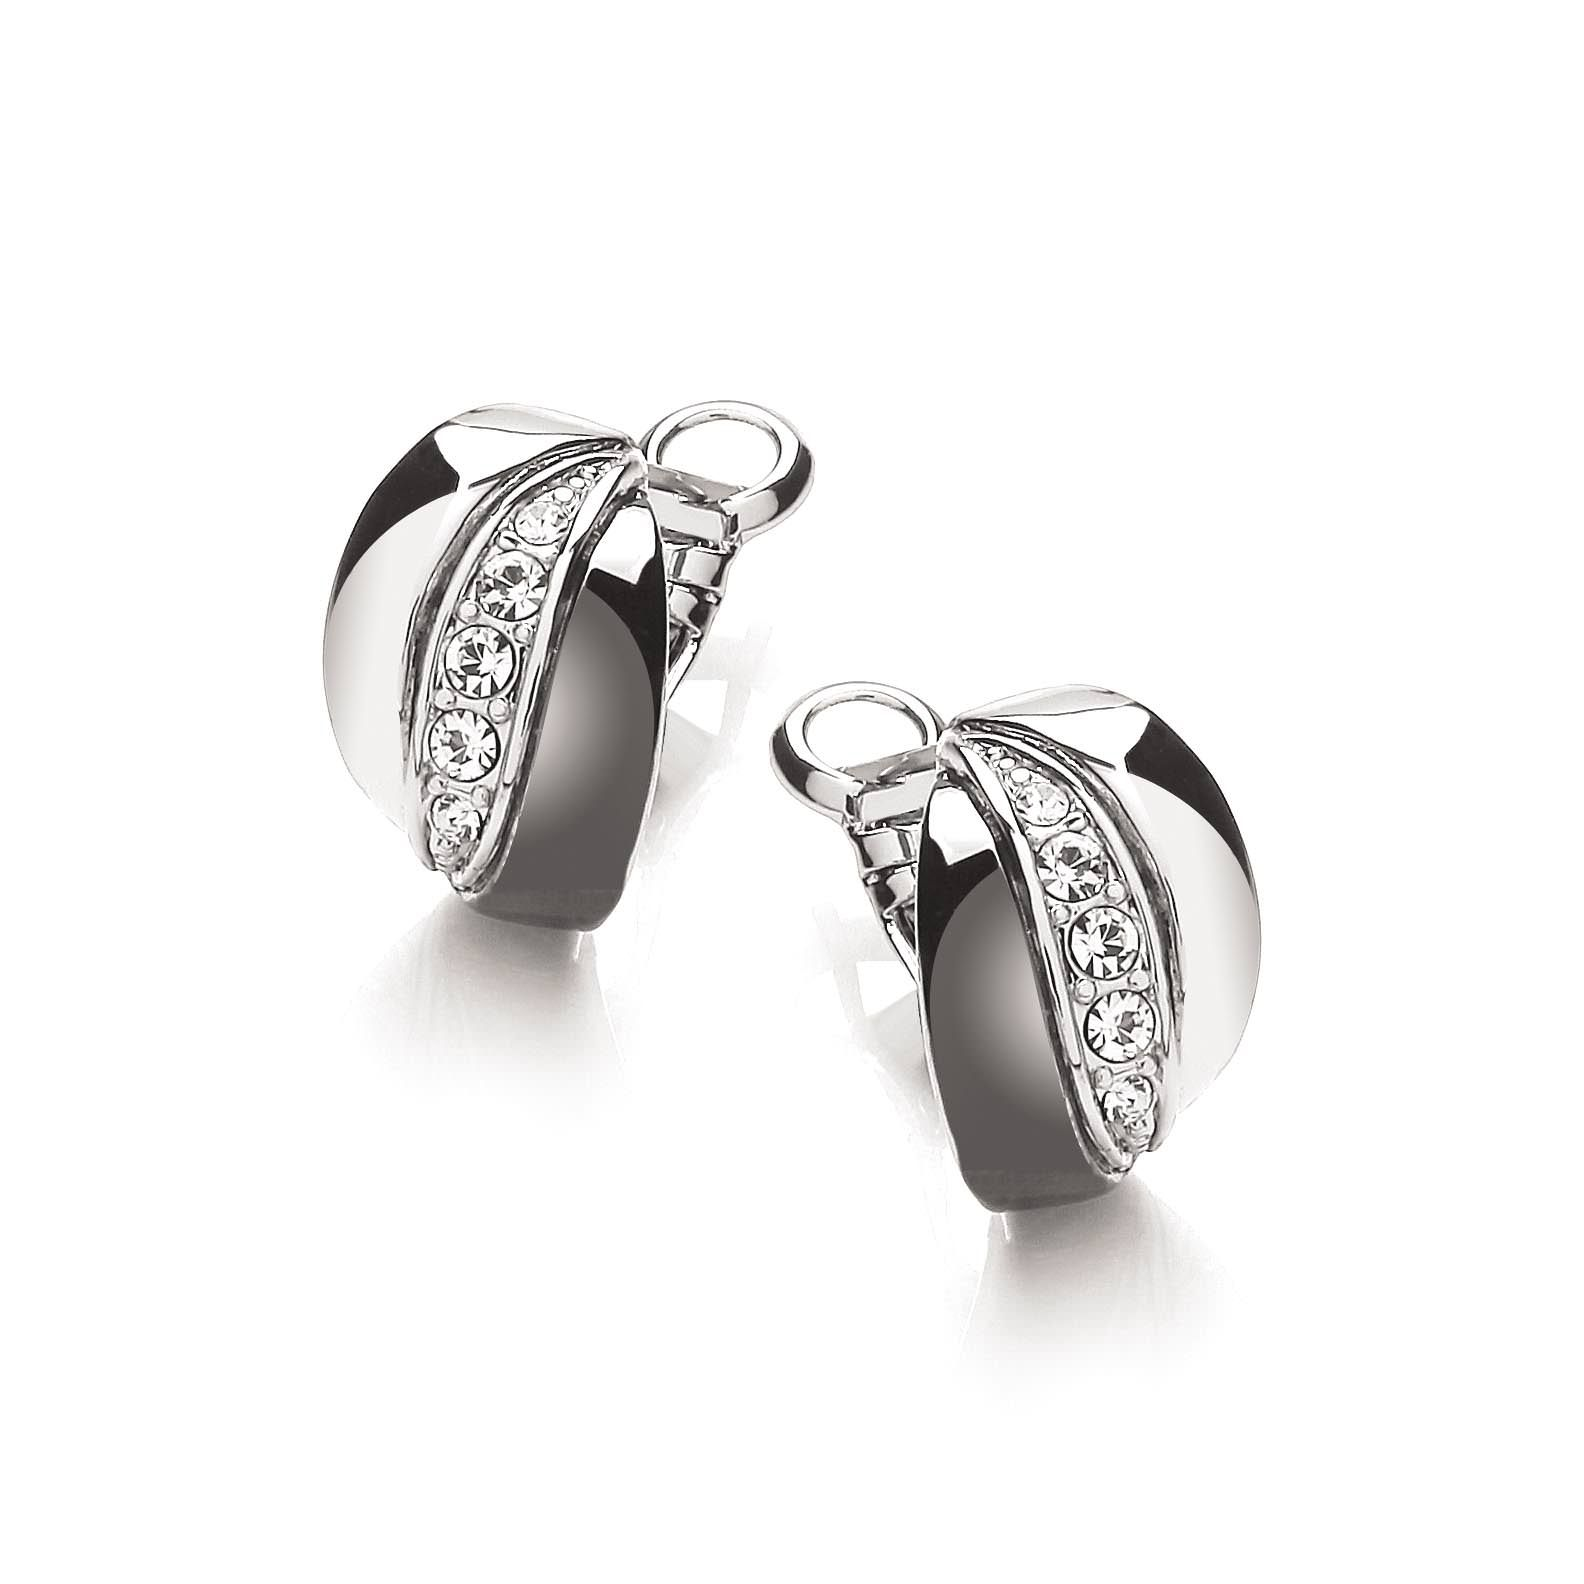 buckley london black rhodium russian earrings